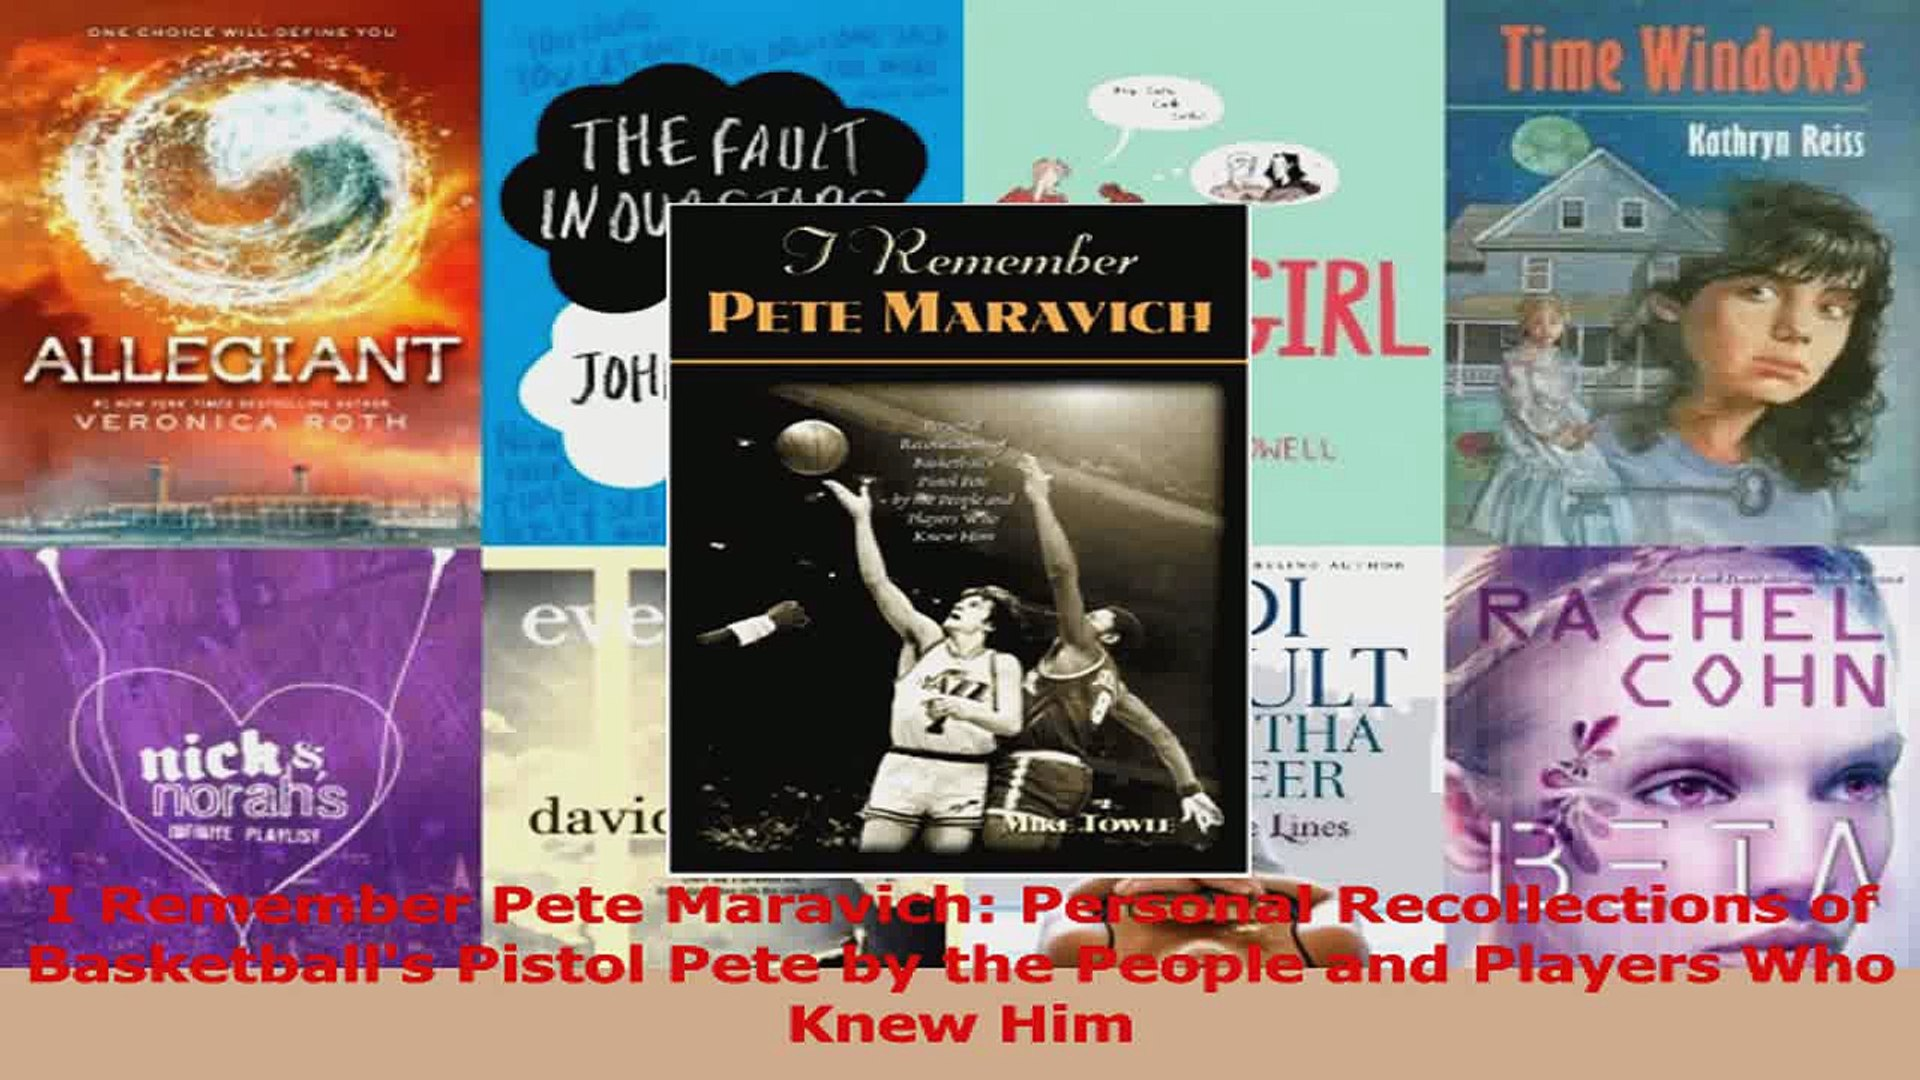 Download  I Remember Pete Maravich Personal Recollections of Basketballs Pistol Pete by the People P